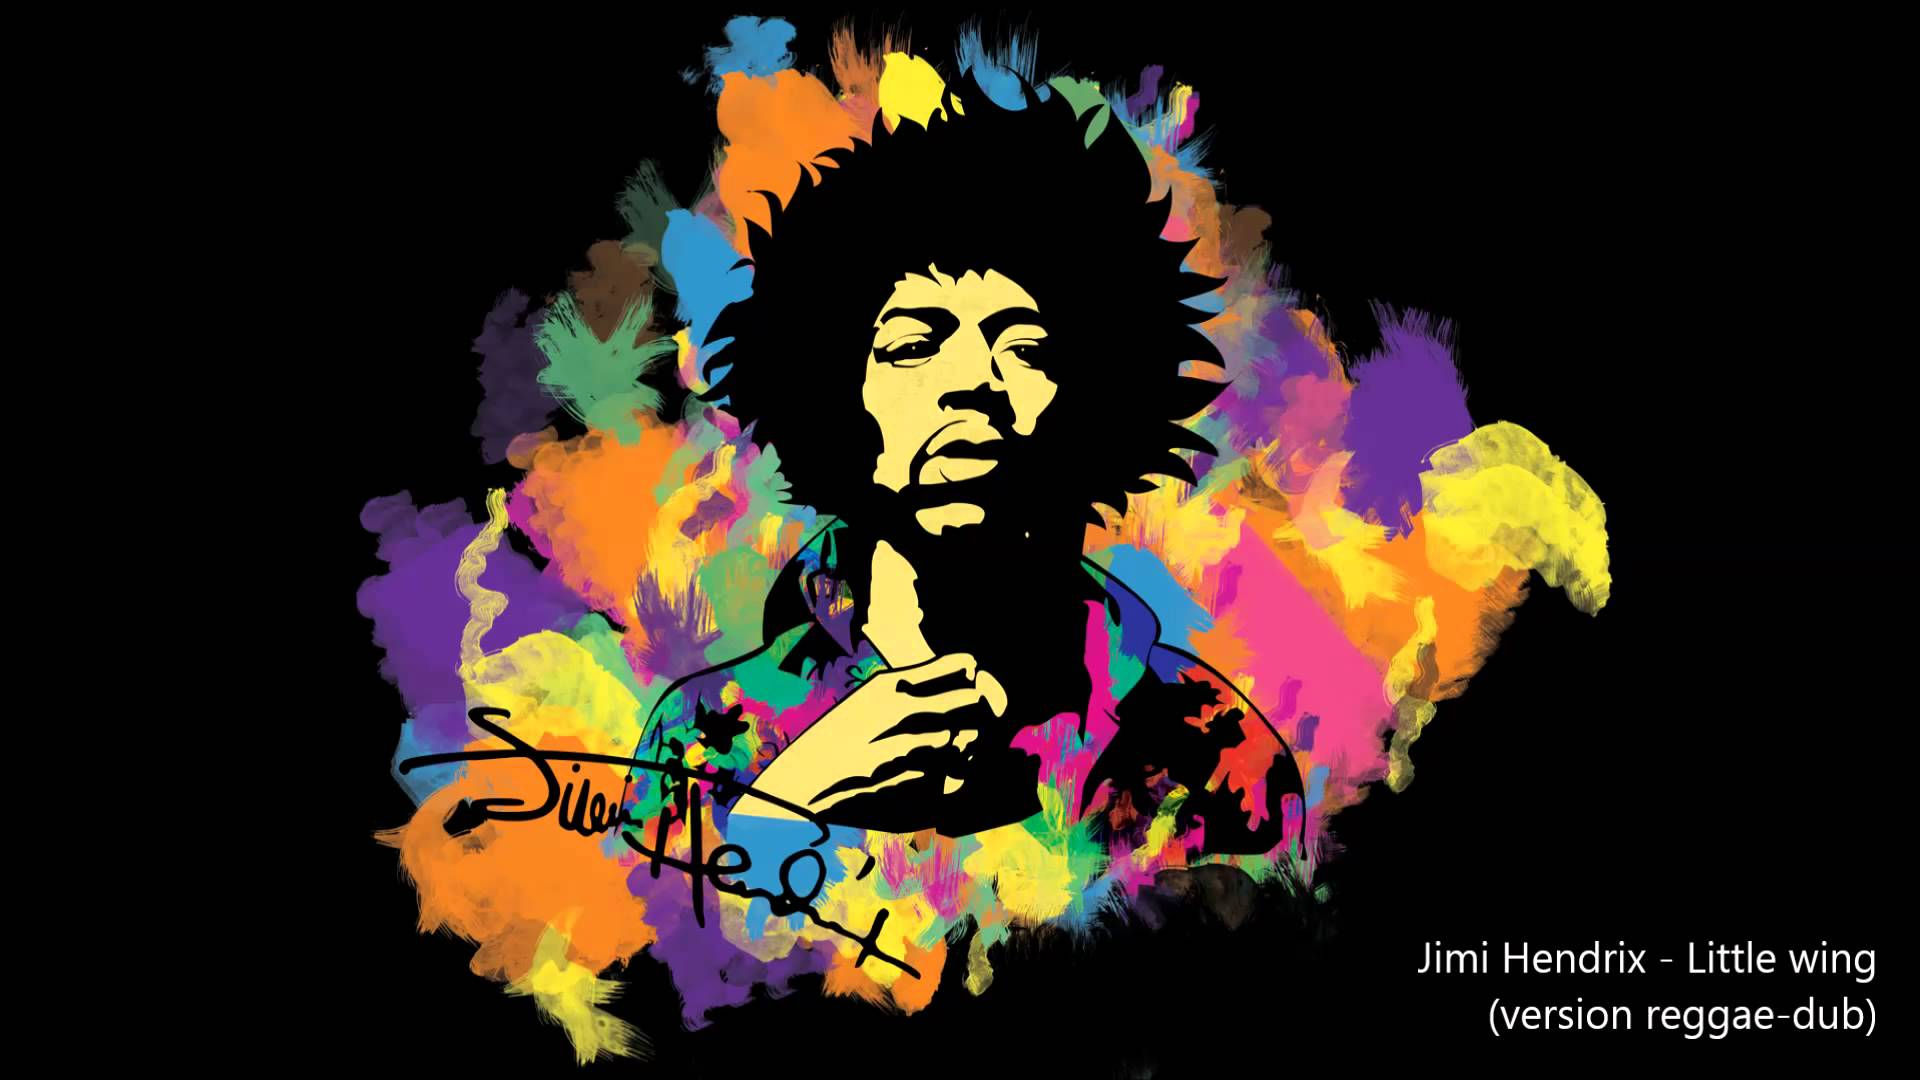 Hd jimi hendrix wallpapers page 3 of 3 wallpaper pages altavistaventures Images